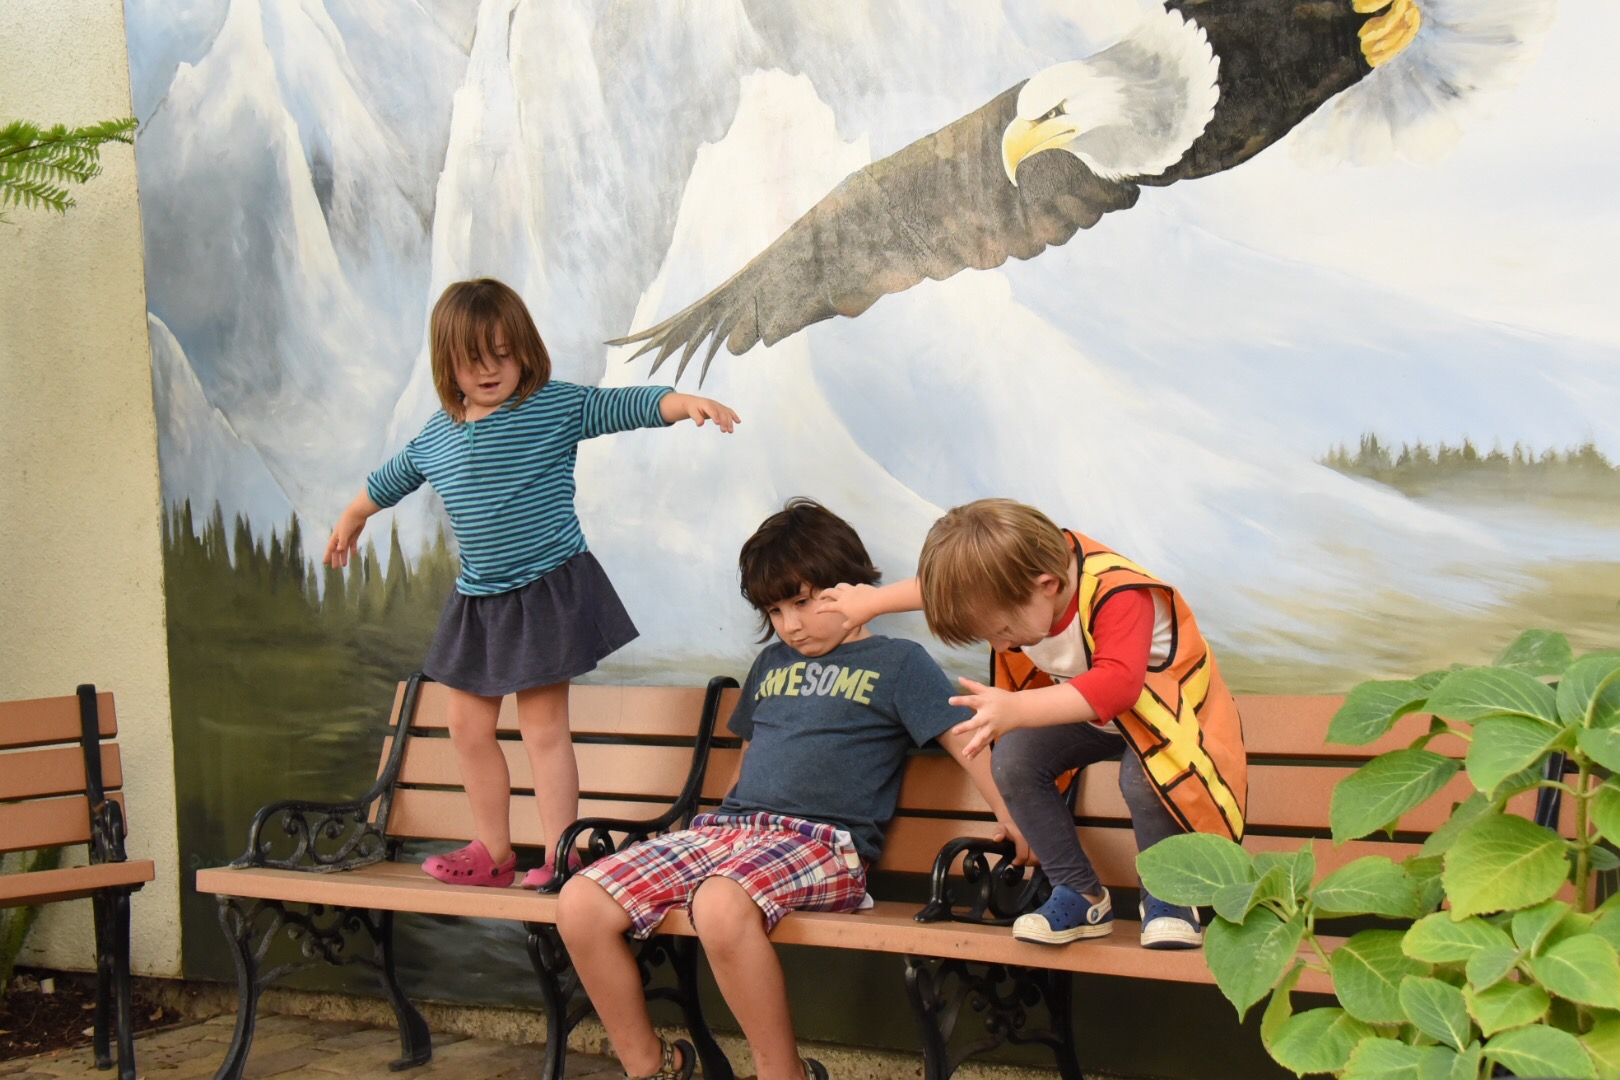 kids on benches under a mural of a bird soaring, they are pretending to fly